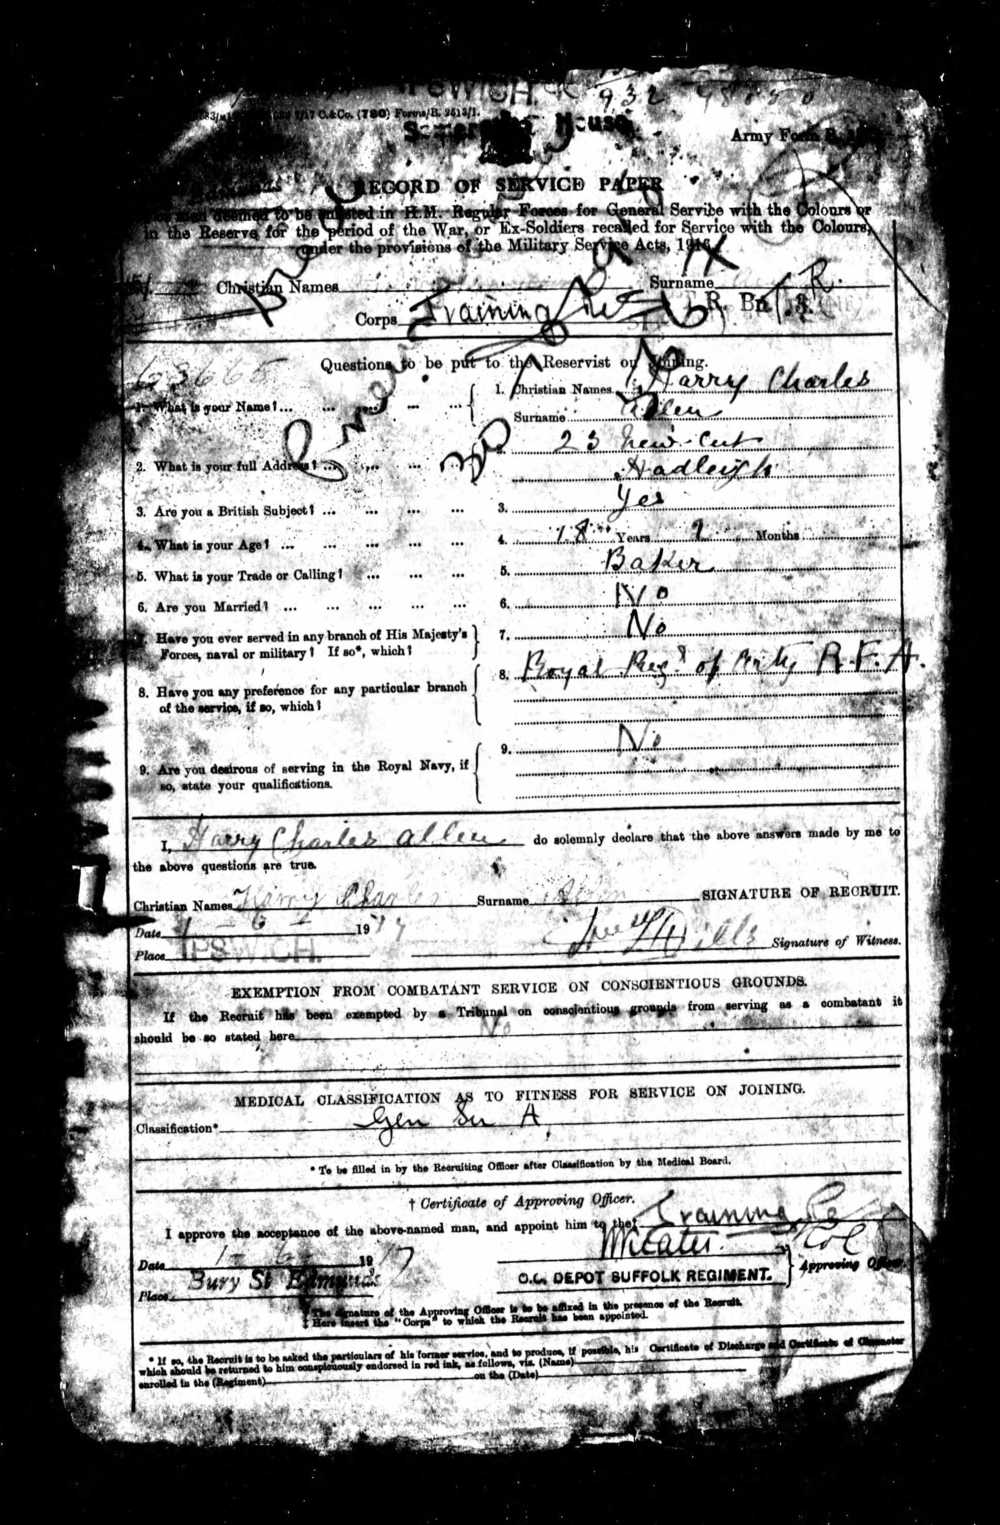 Harry Charles Allen service record 1.jpg